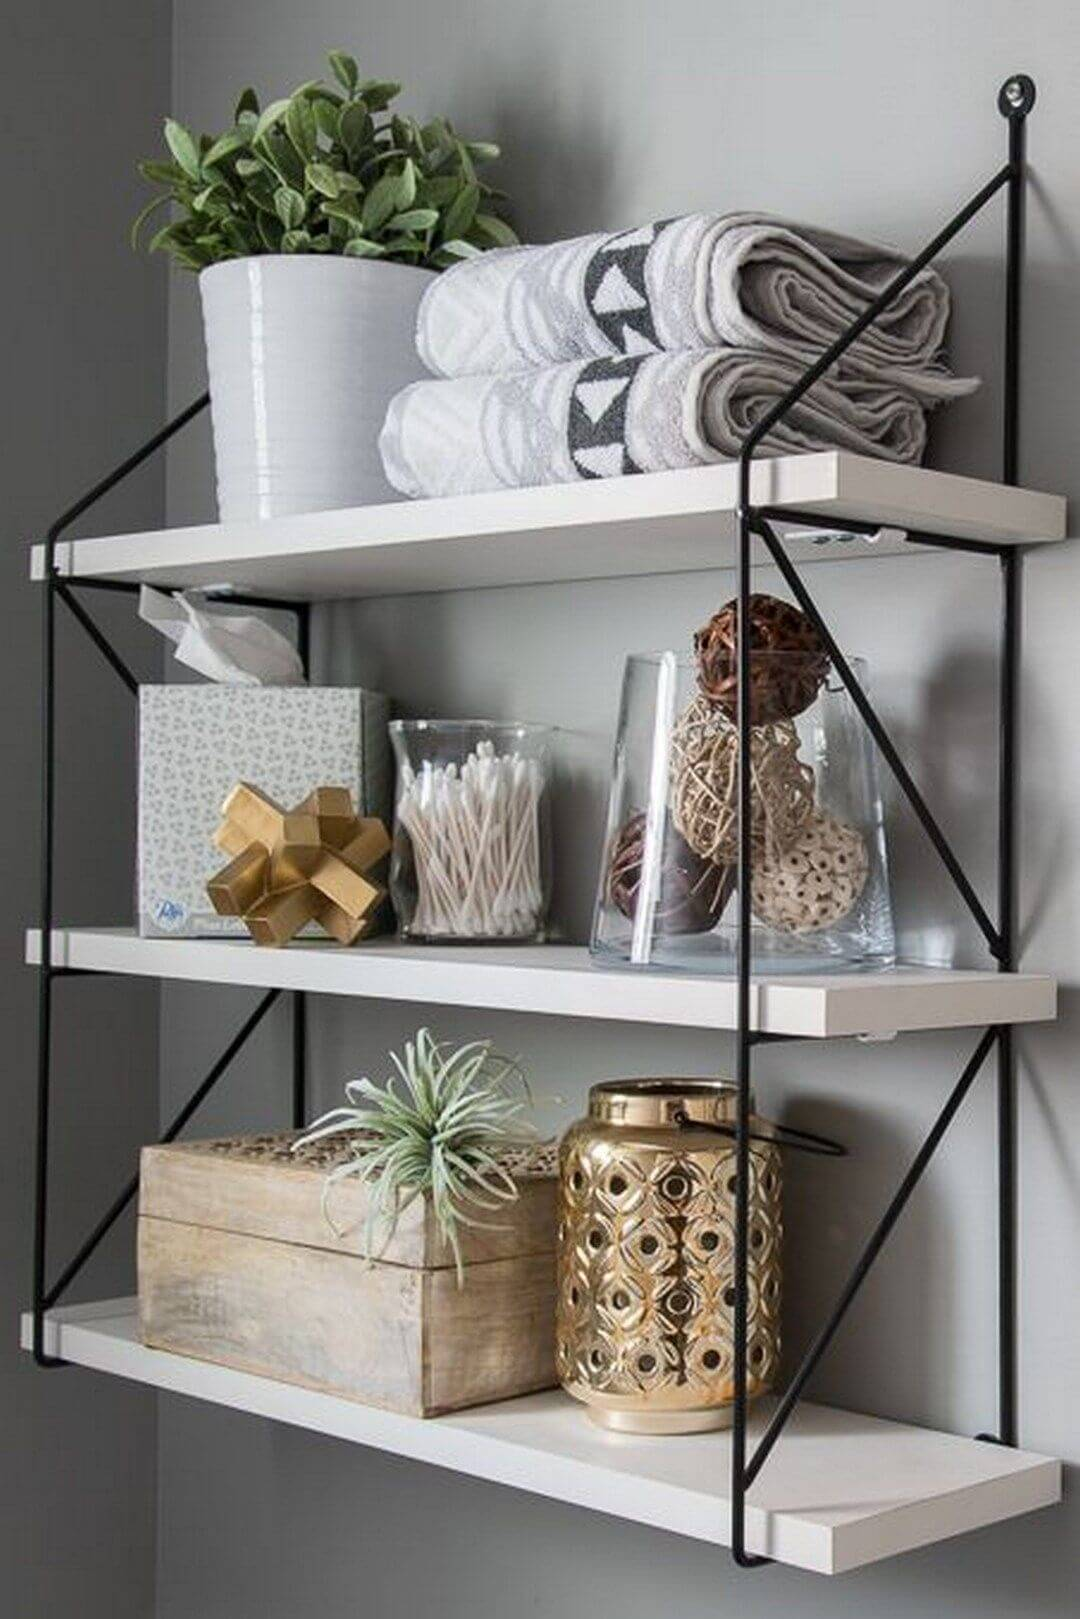 Mounted Shelves with Wood Panels and Wire